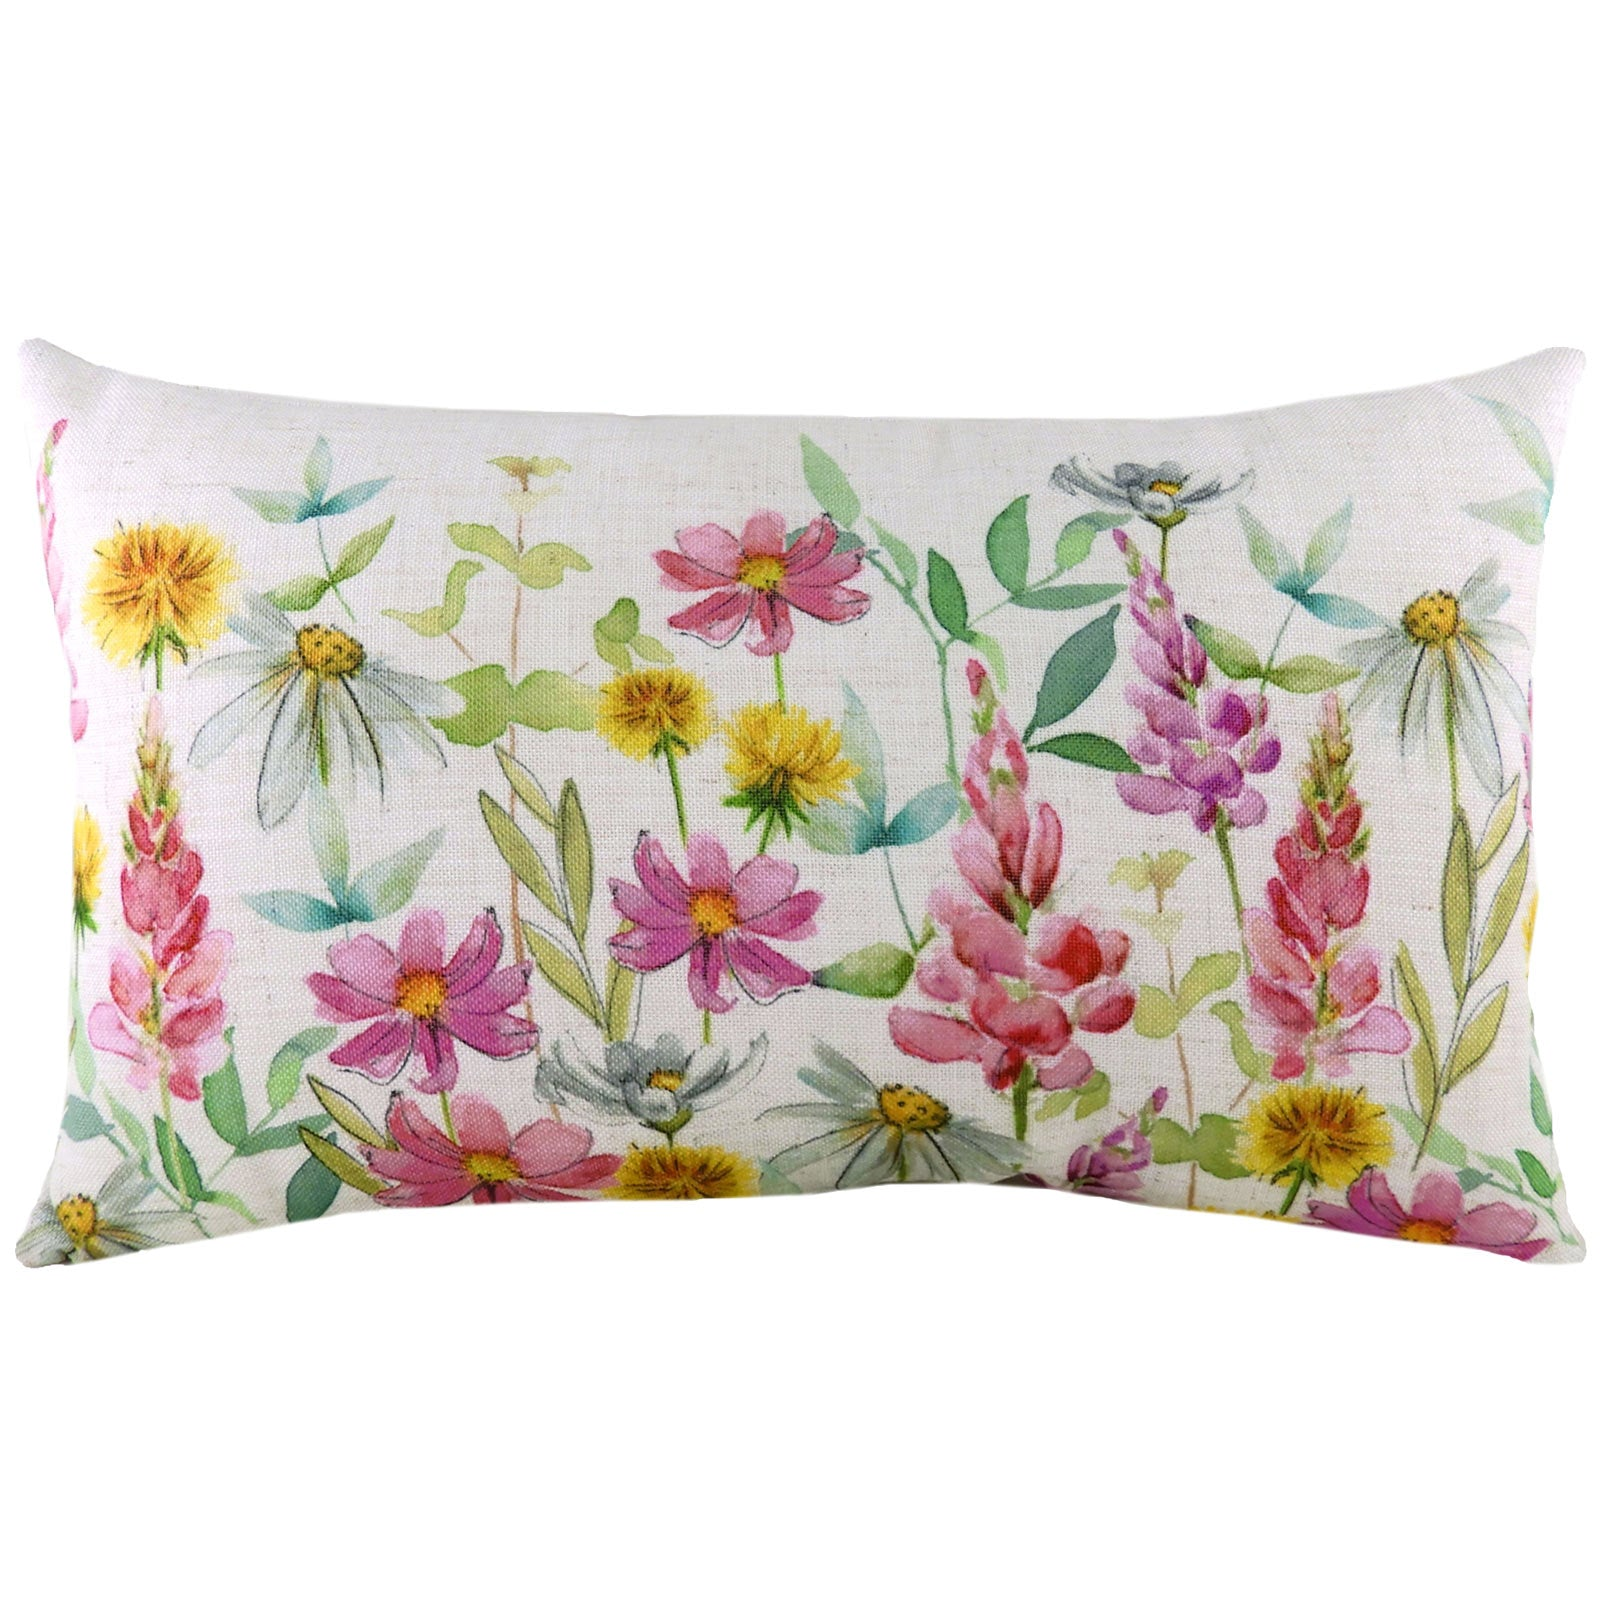 Wild Flowers Ava Multicolour Boudoir Cushion Covers 12'' x 20'' -  - Ideal Textiles